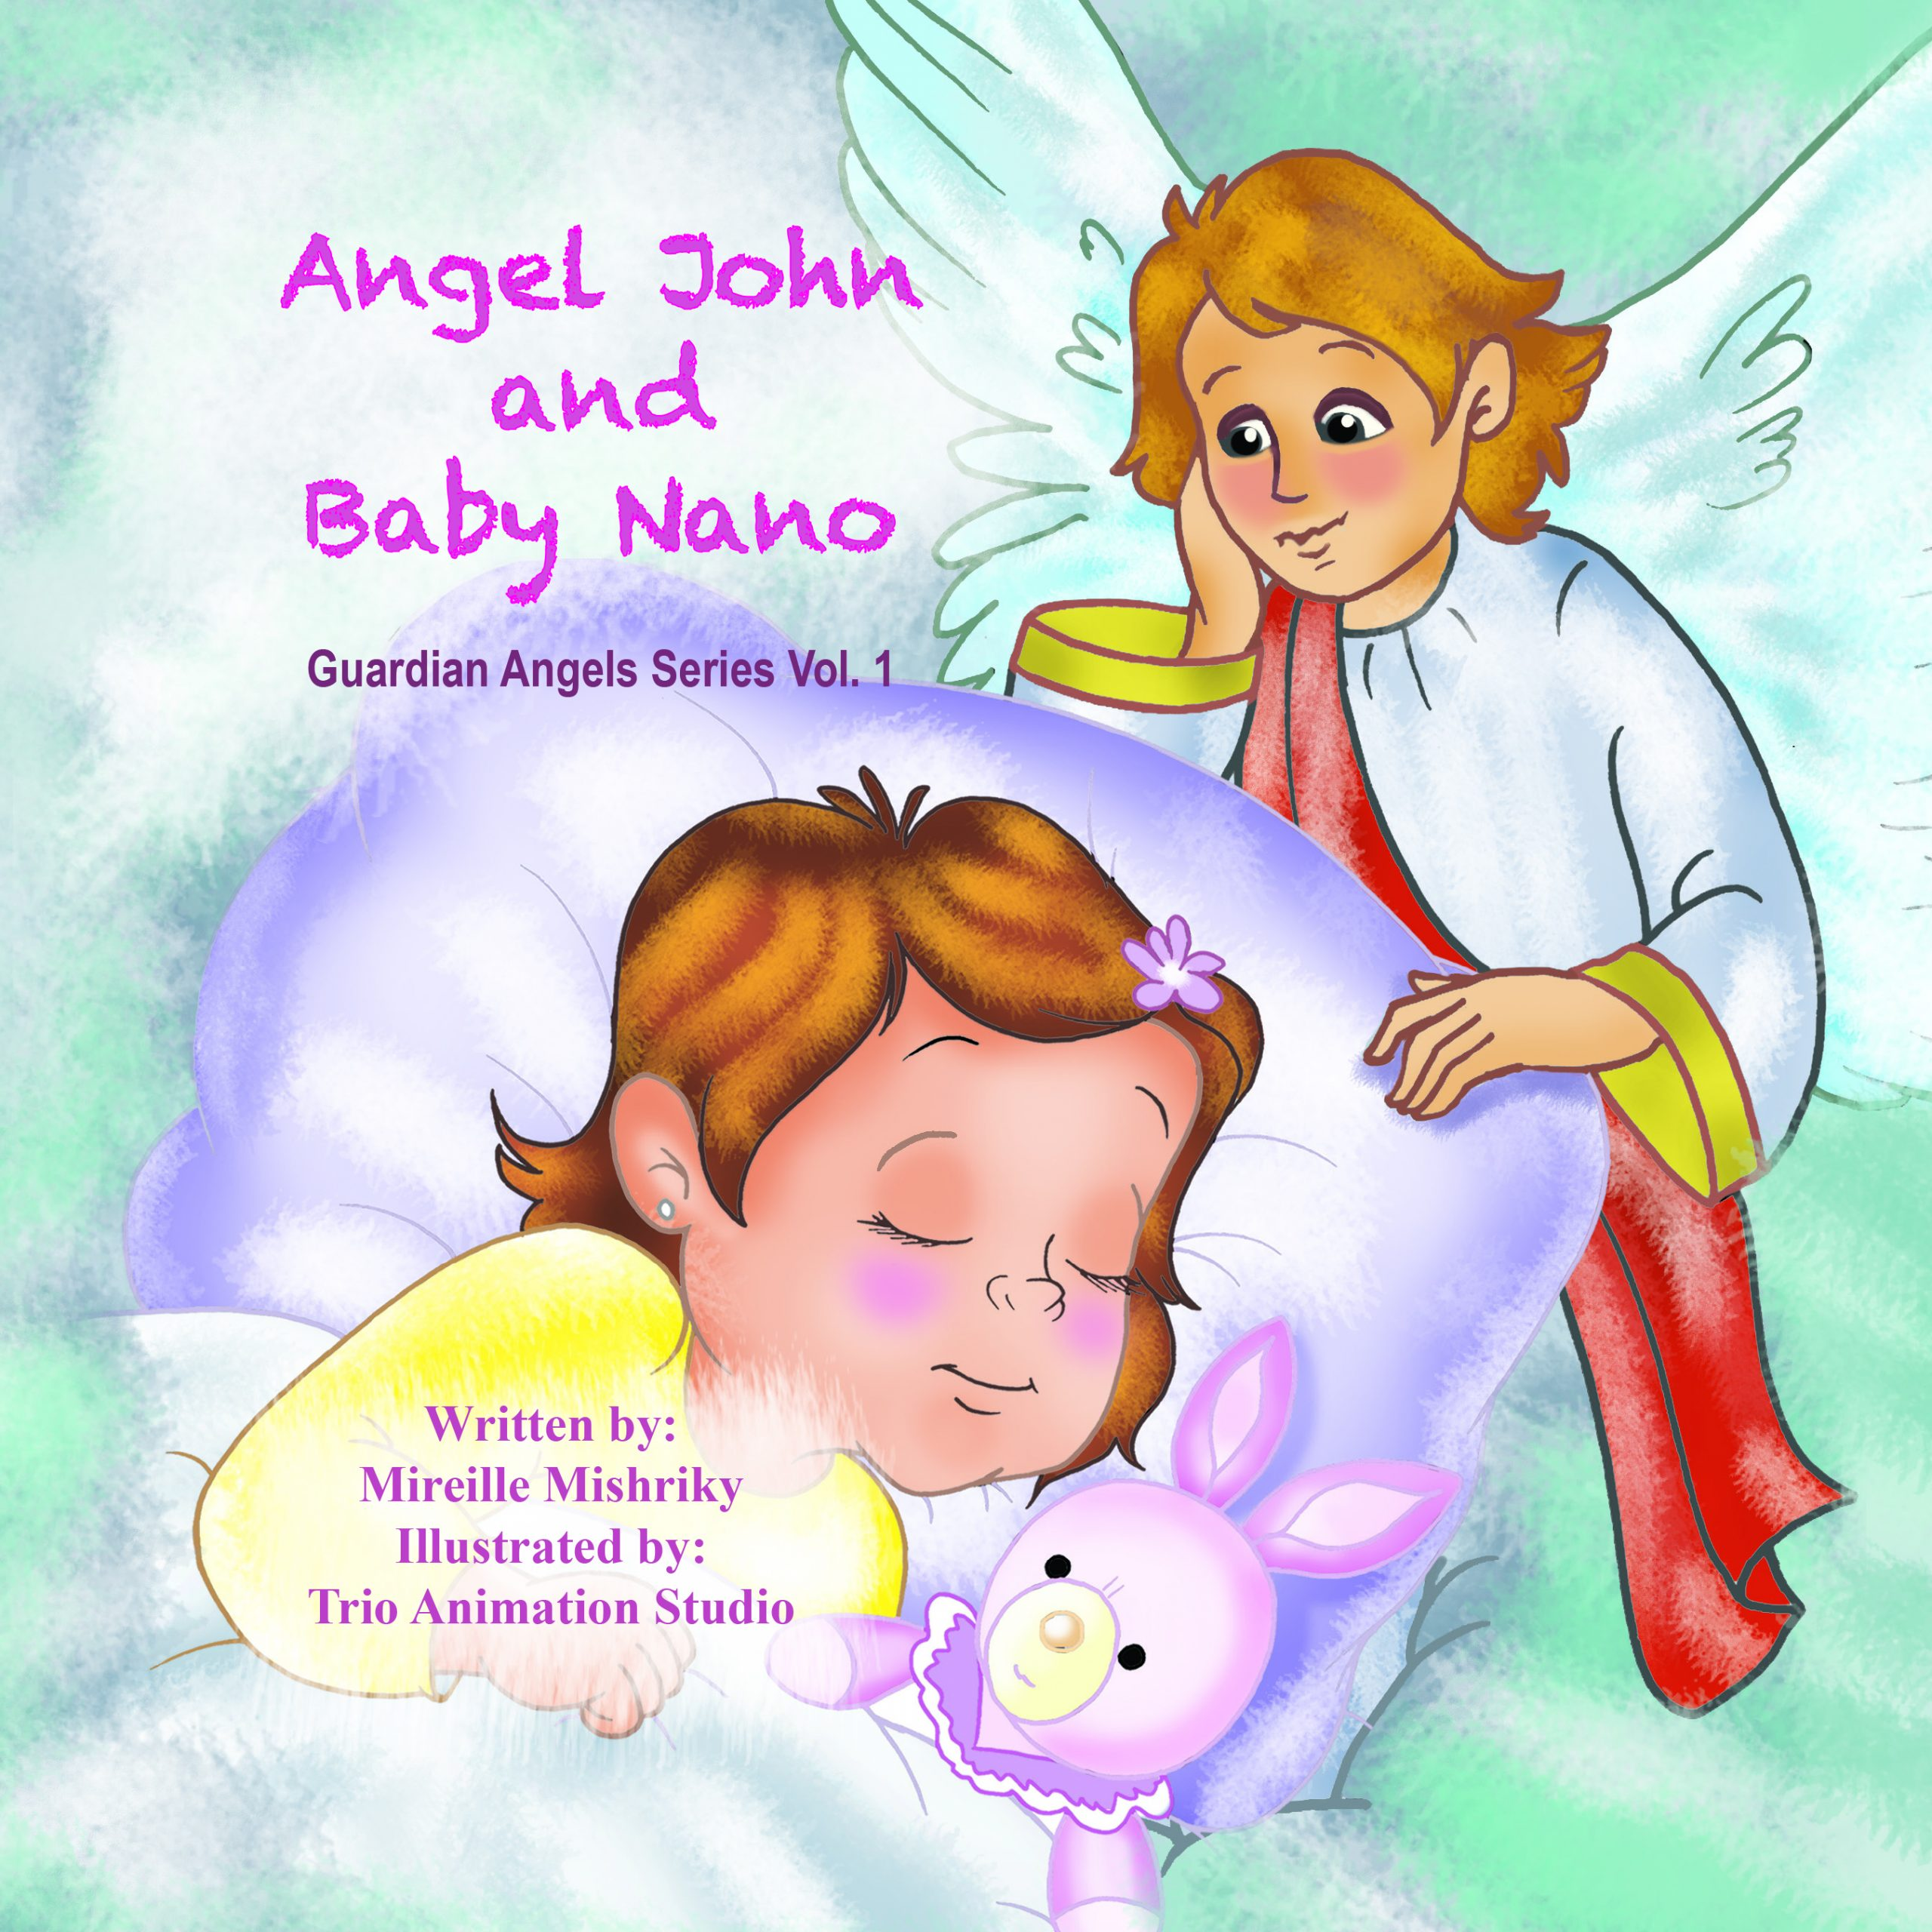 Book Release Announcement: Angel John and Baby Nano